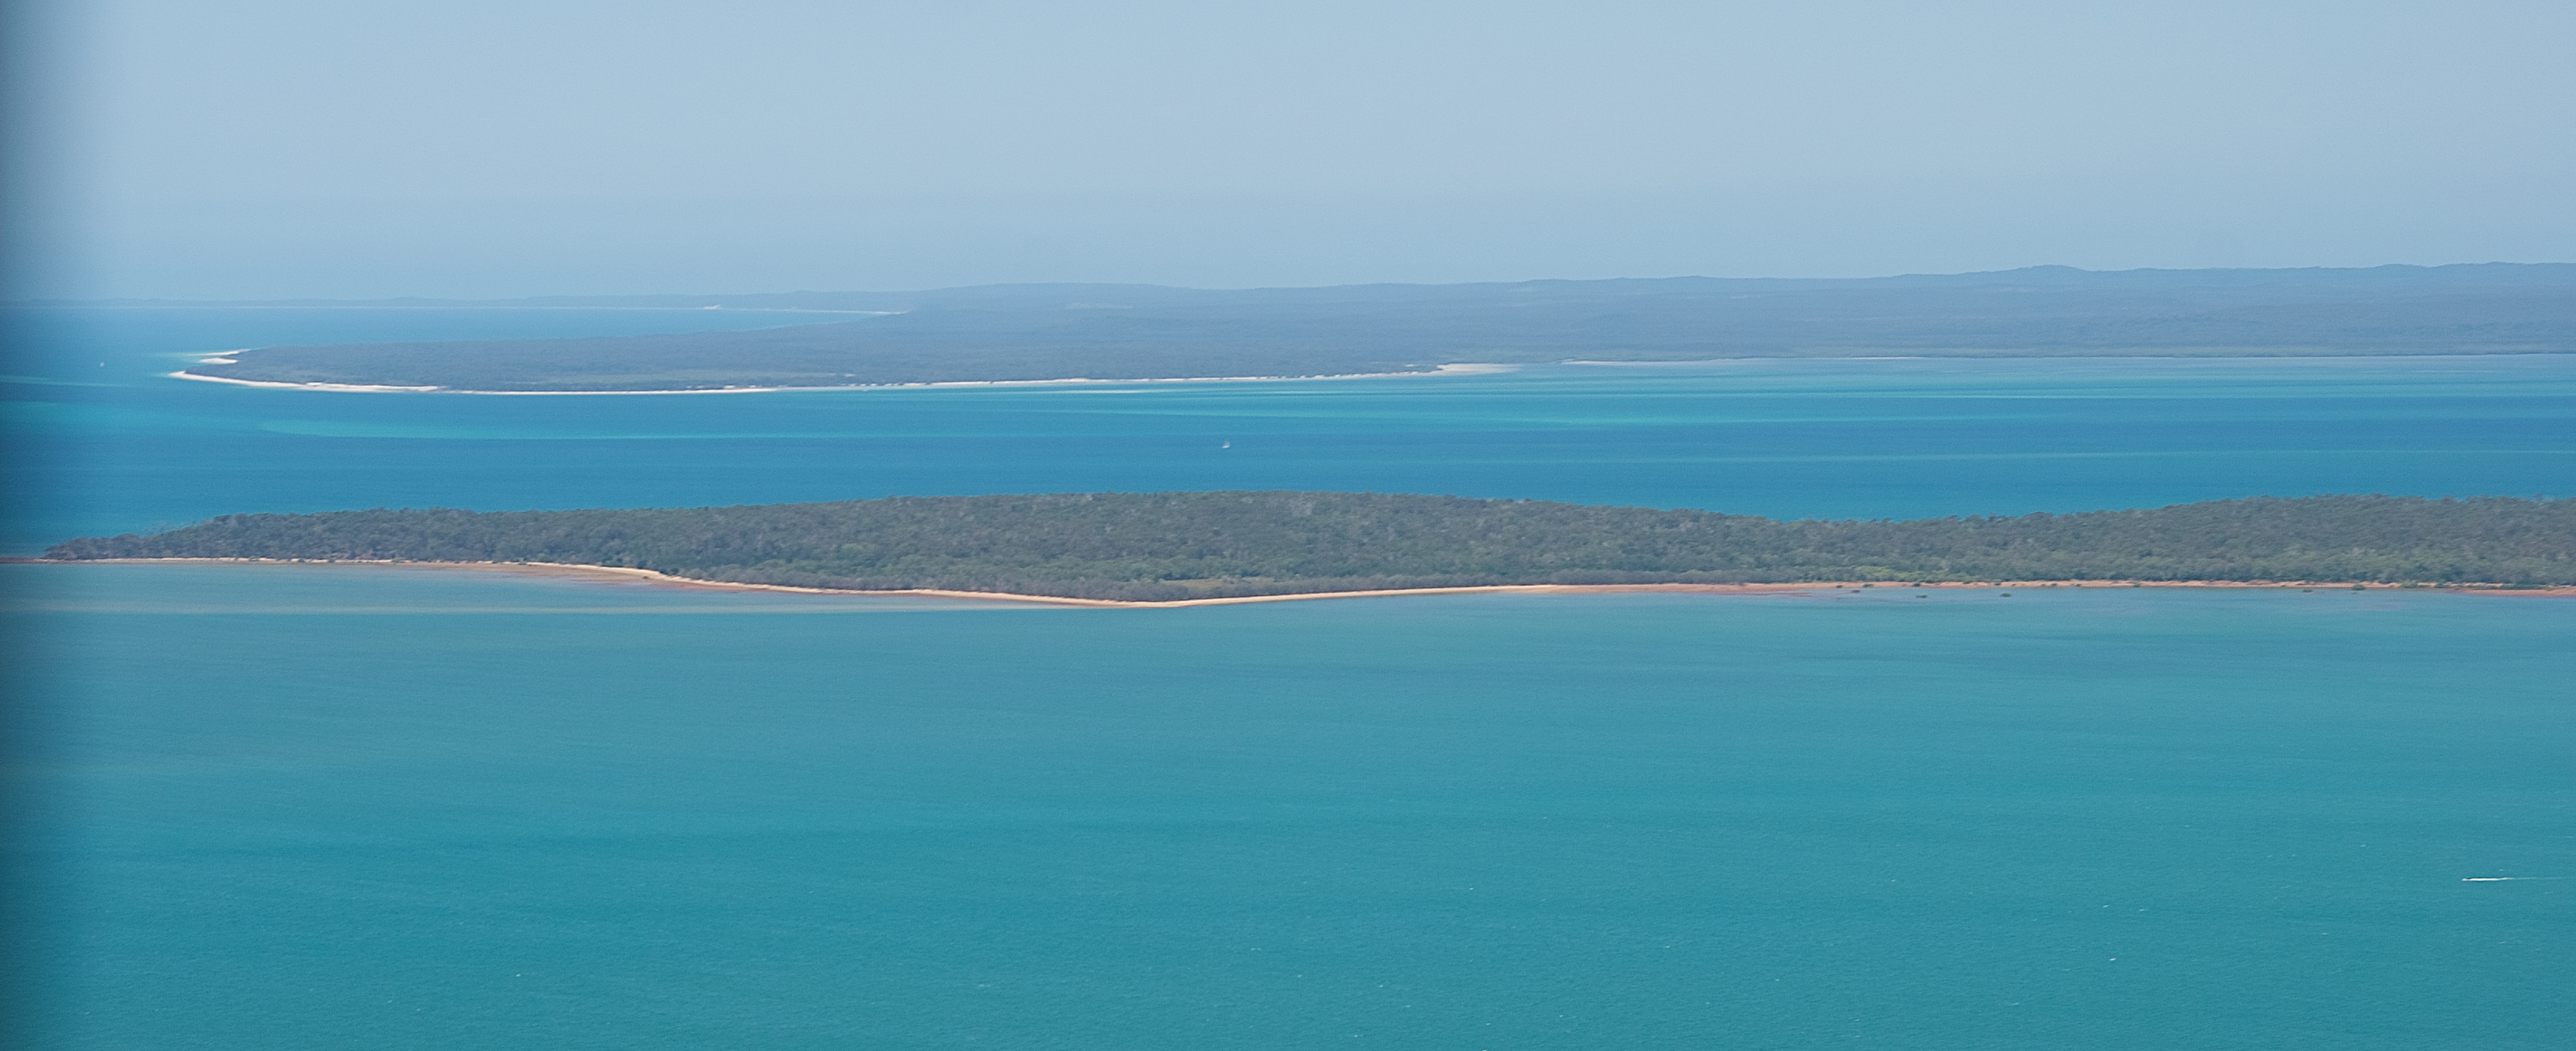 Looking east from our aircraft. The large island in the distance is Fraser Island